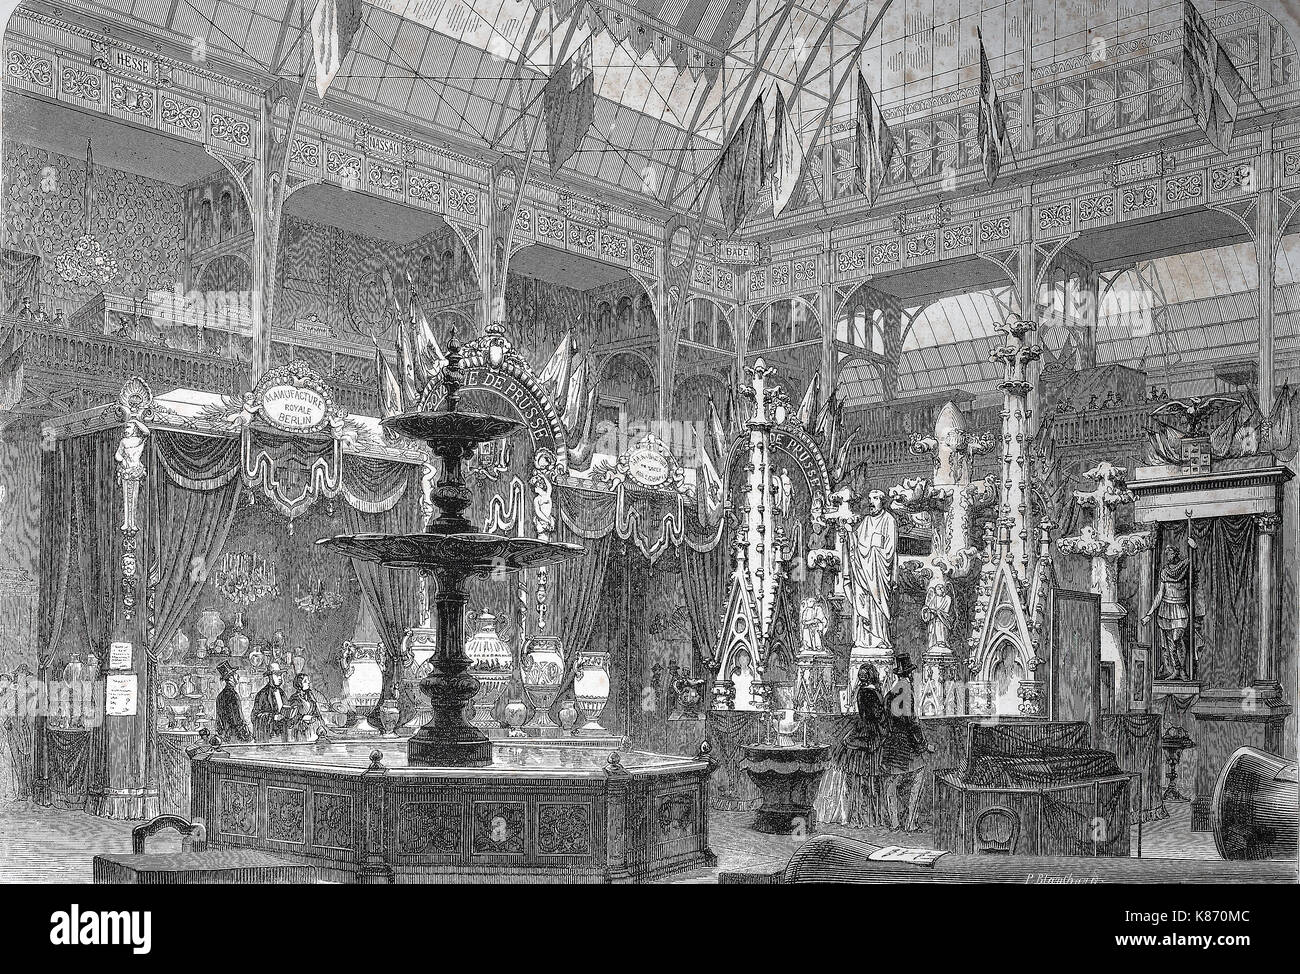 the international exposition 1867, Paris, France, the prussian exhibition hall, Digital improved reproduction of Stock Photo